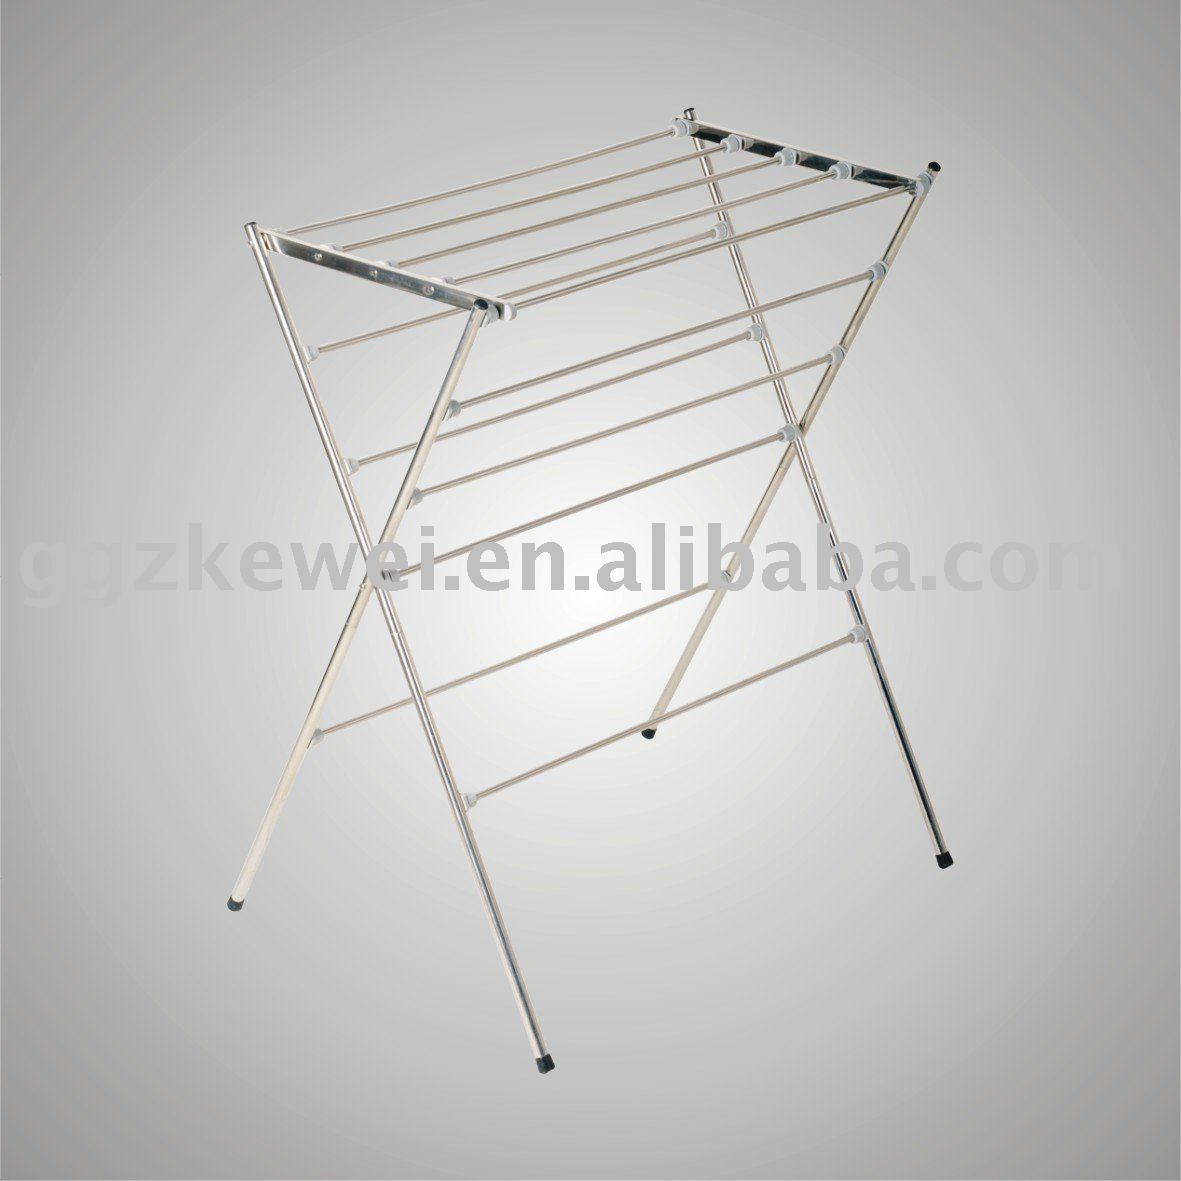 Stainless steel clothes hanger stand buy clothes dryerclothing dryergarment dryer product on alibaba com